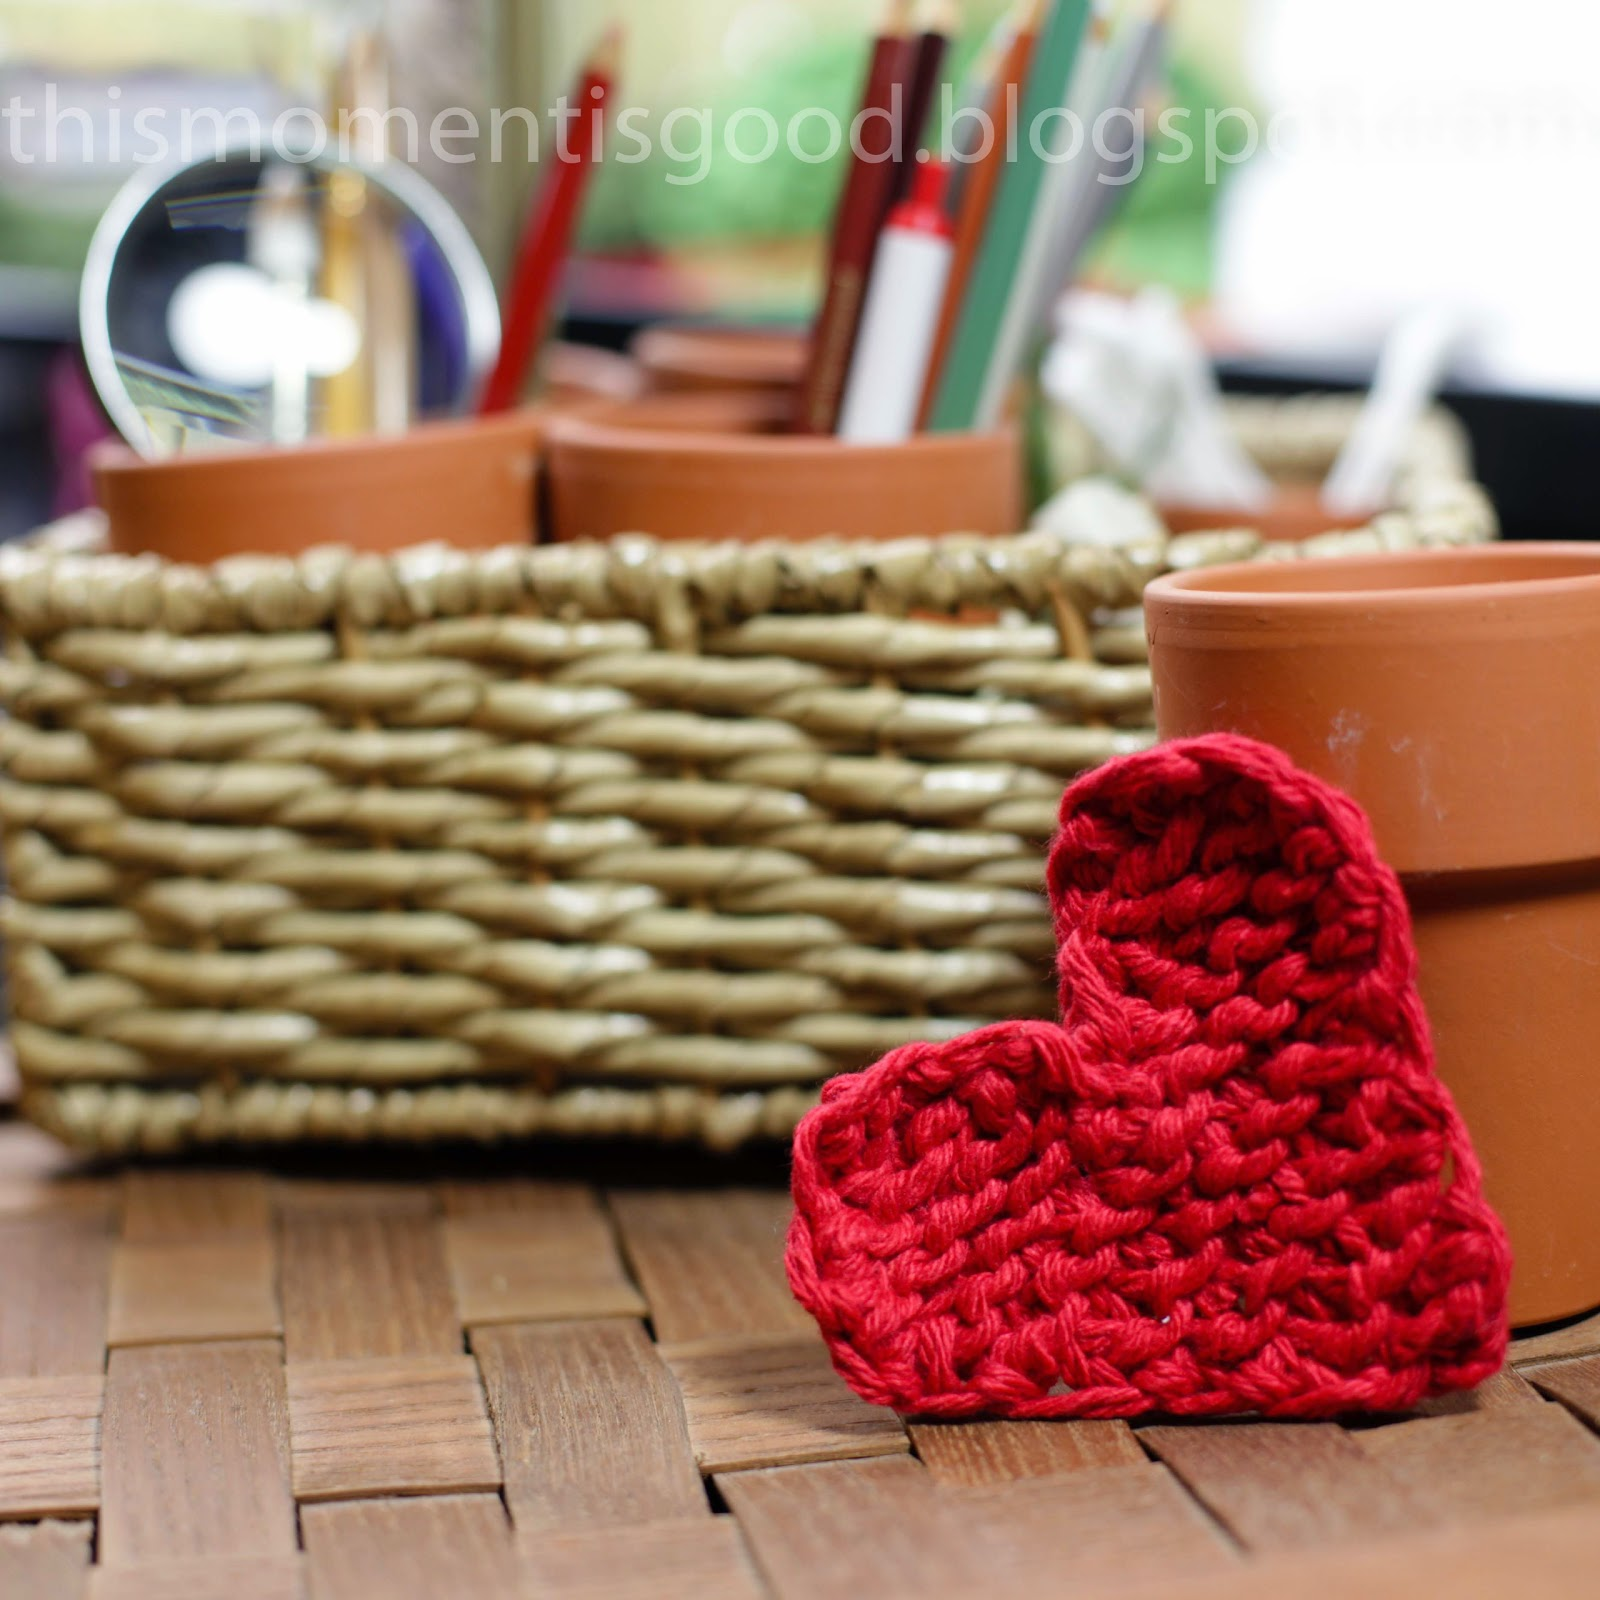 Simple Knitted Booties Pattern : Loom Knitting by This Moment is Good!: LOOM KNIT HEART - FREE PATTERN